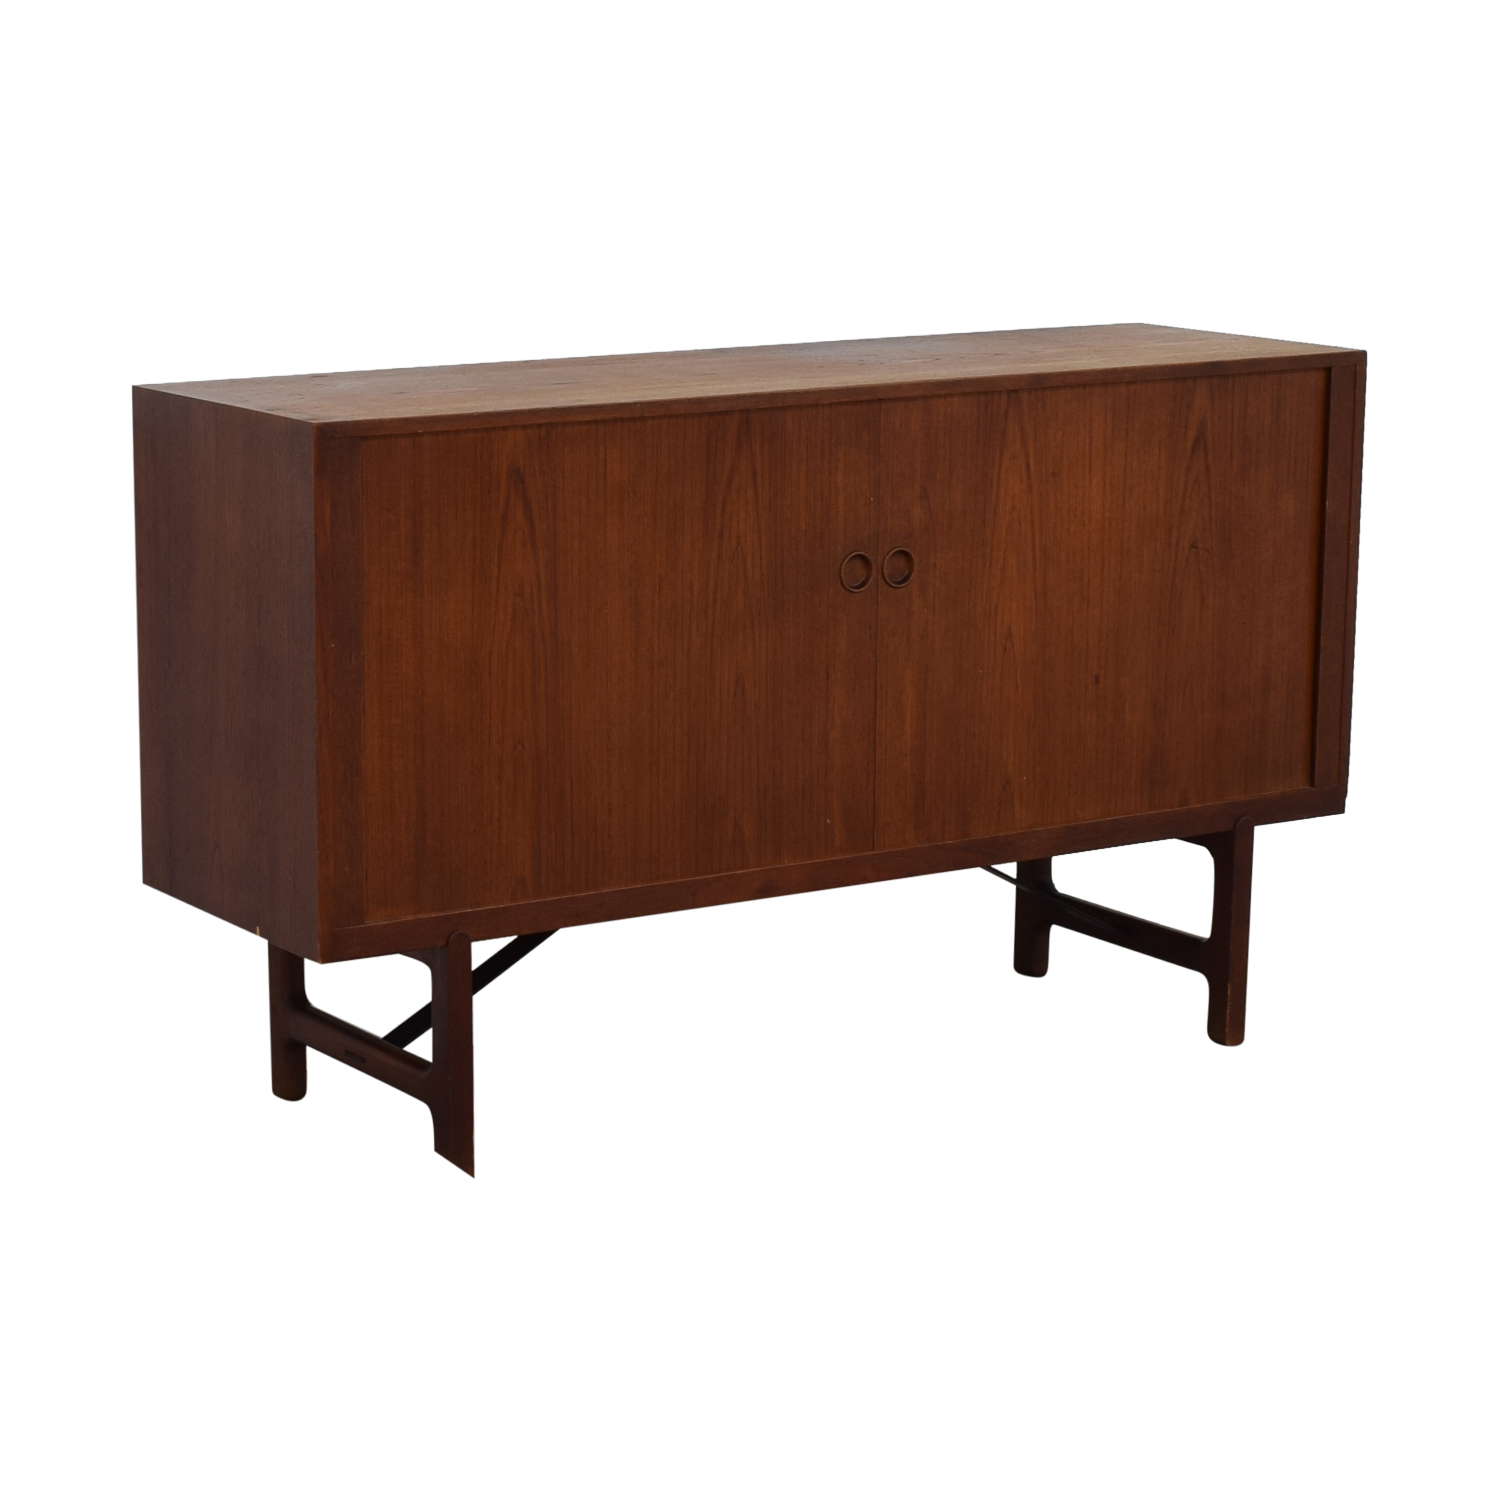 ABC Carpet & Home ABC Carpet & Home Danish Wood Two-Drawer Sideboard coupon